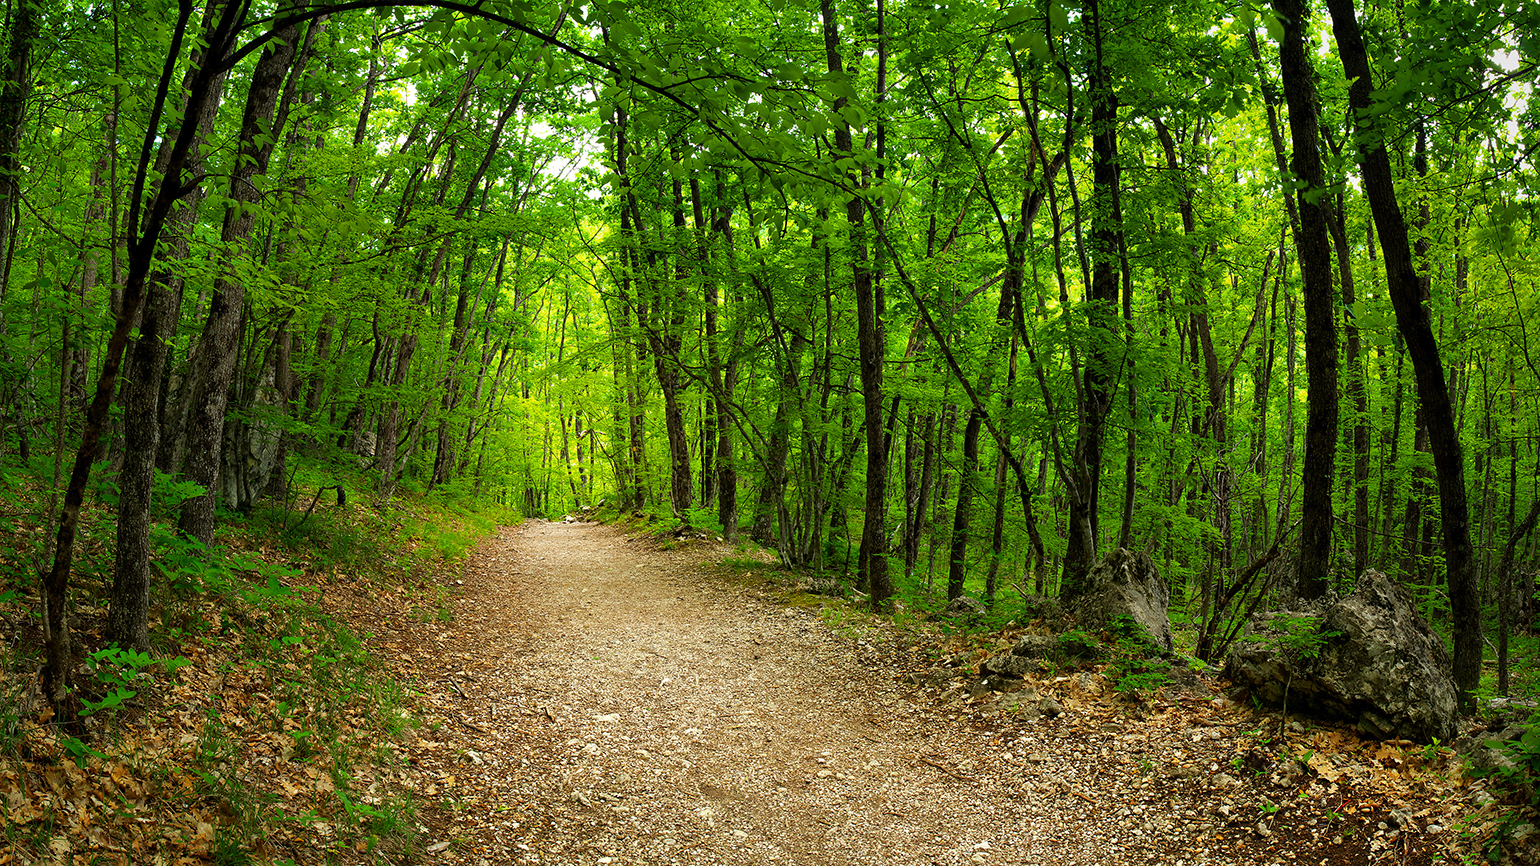 An empty, wooded path